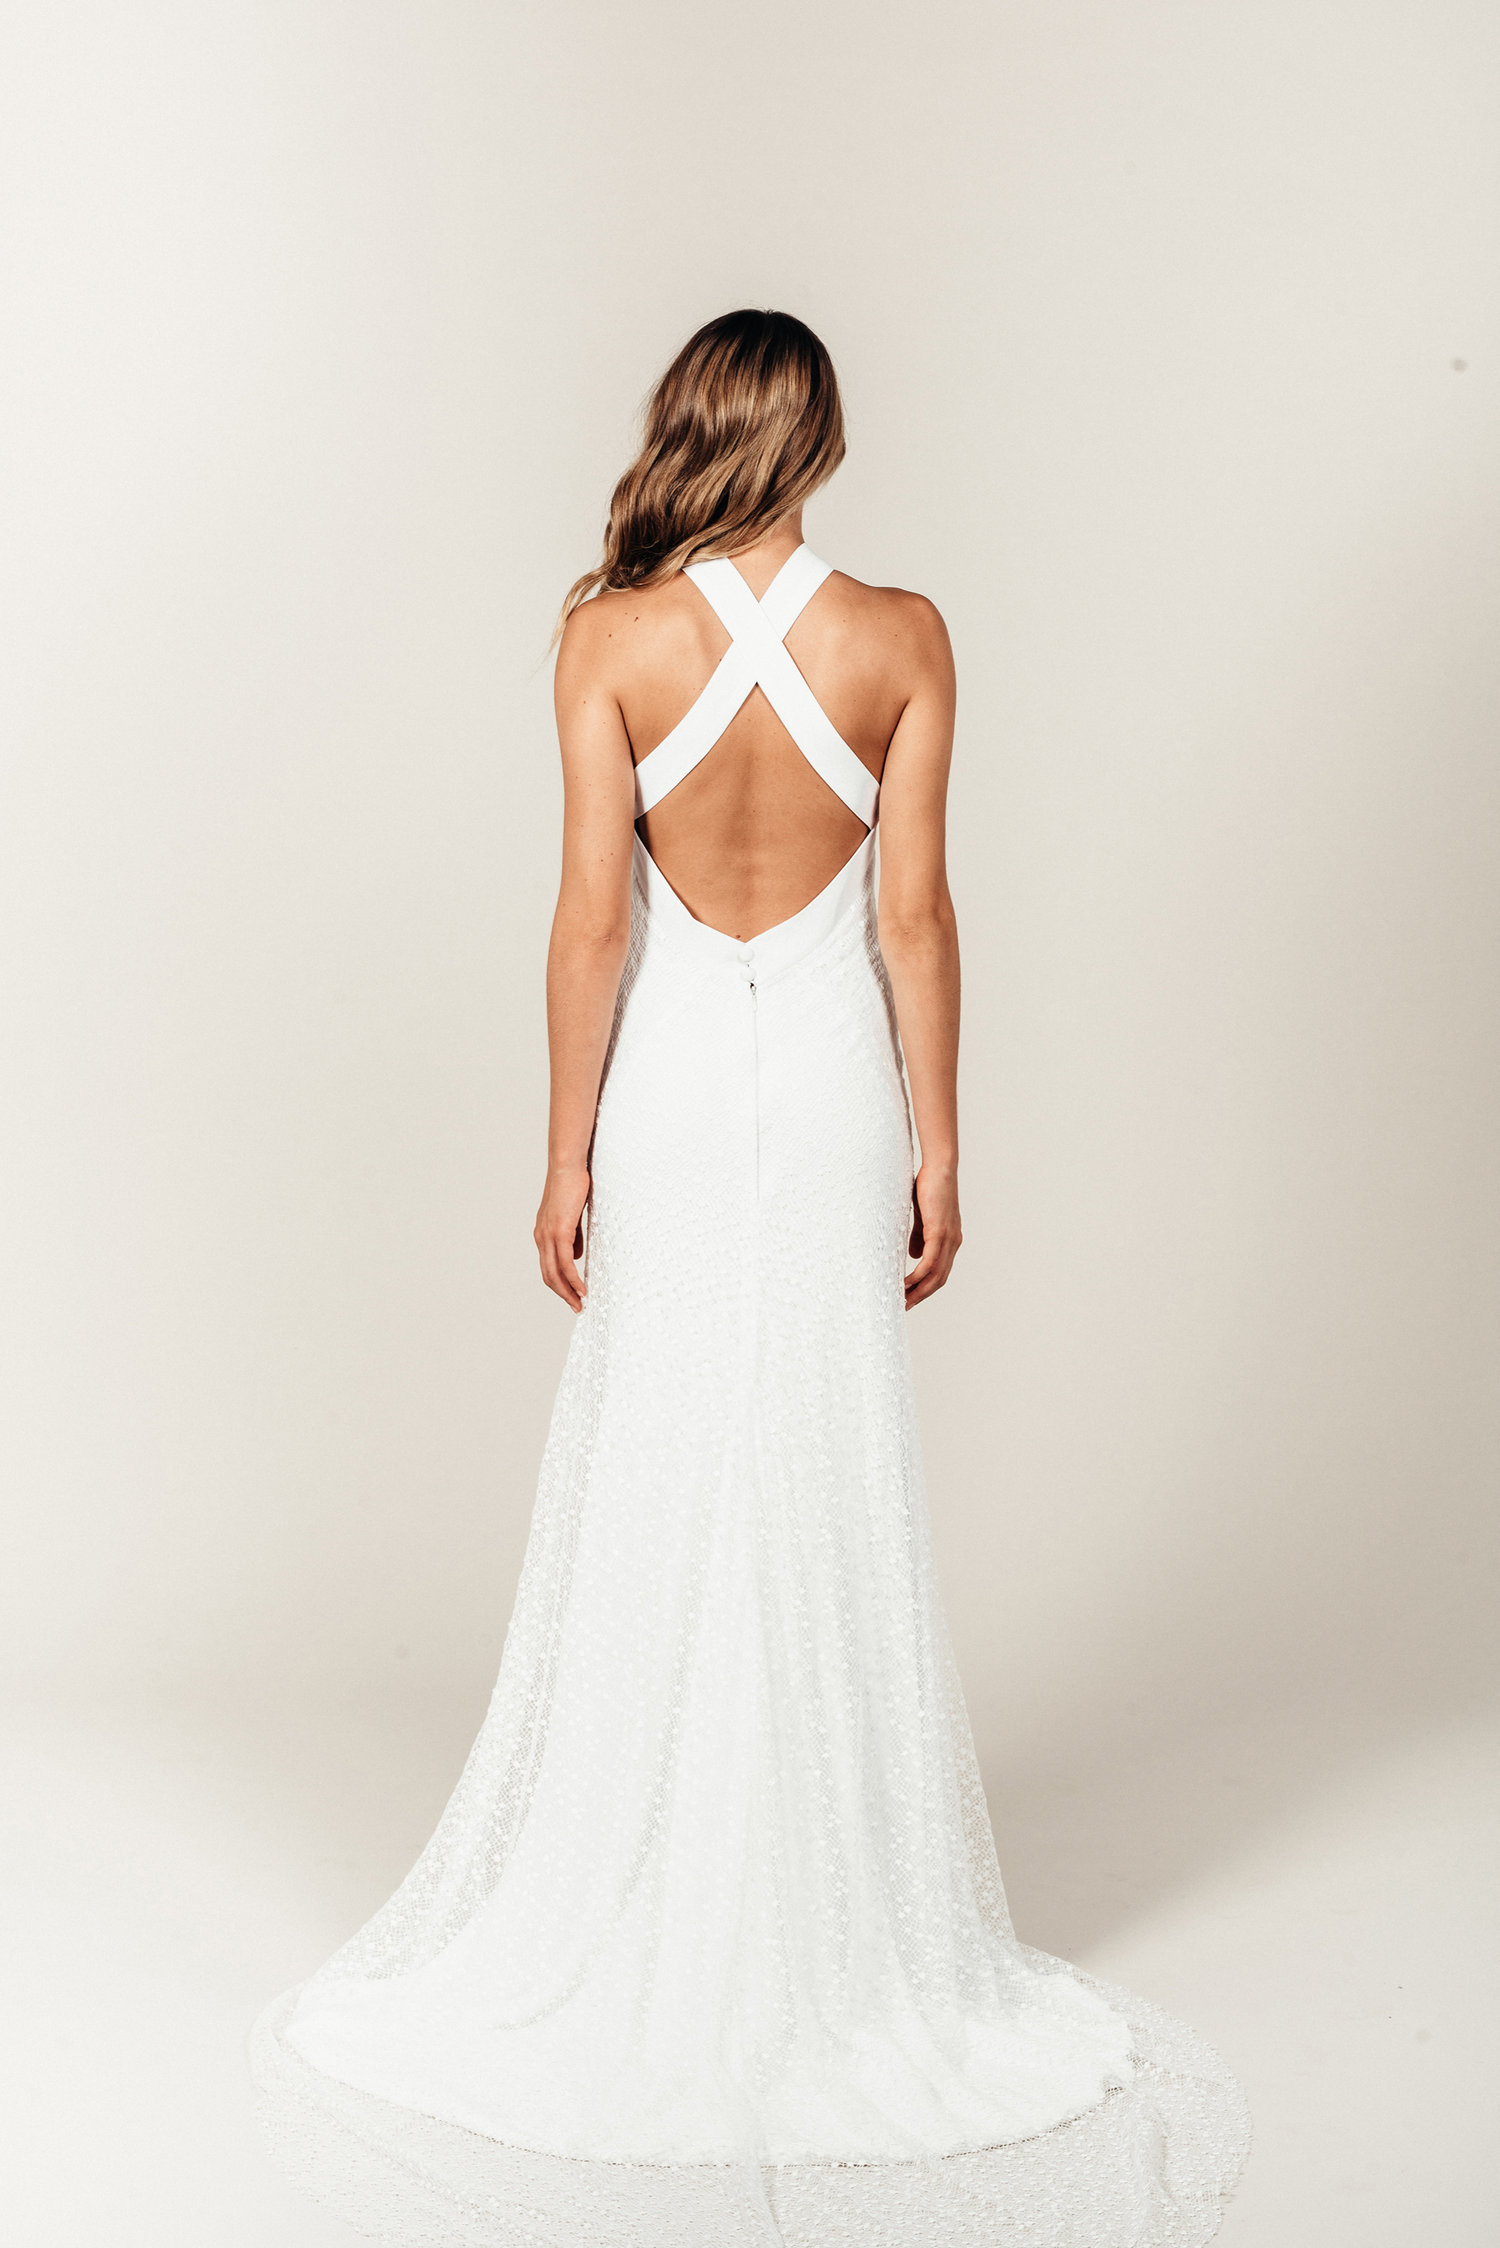 Inspired by a Duchess Halter Neck Wedding Dress — Love